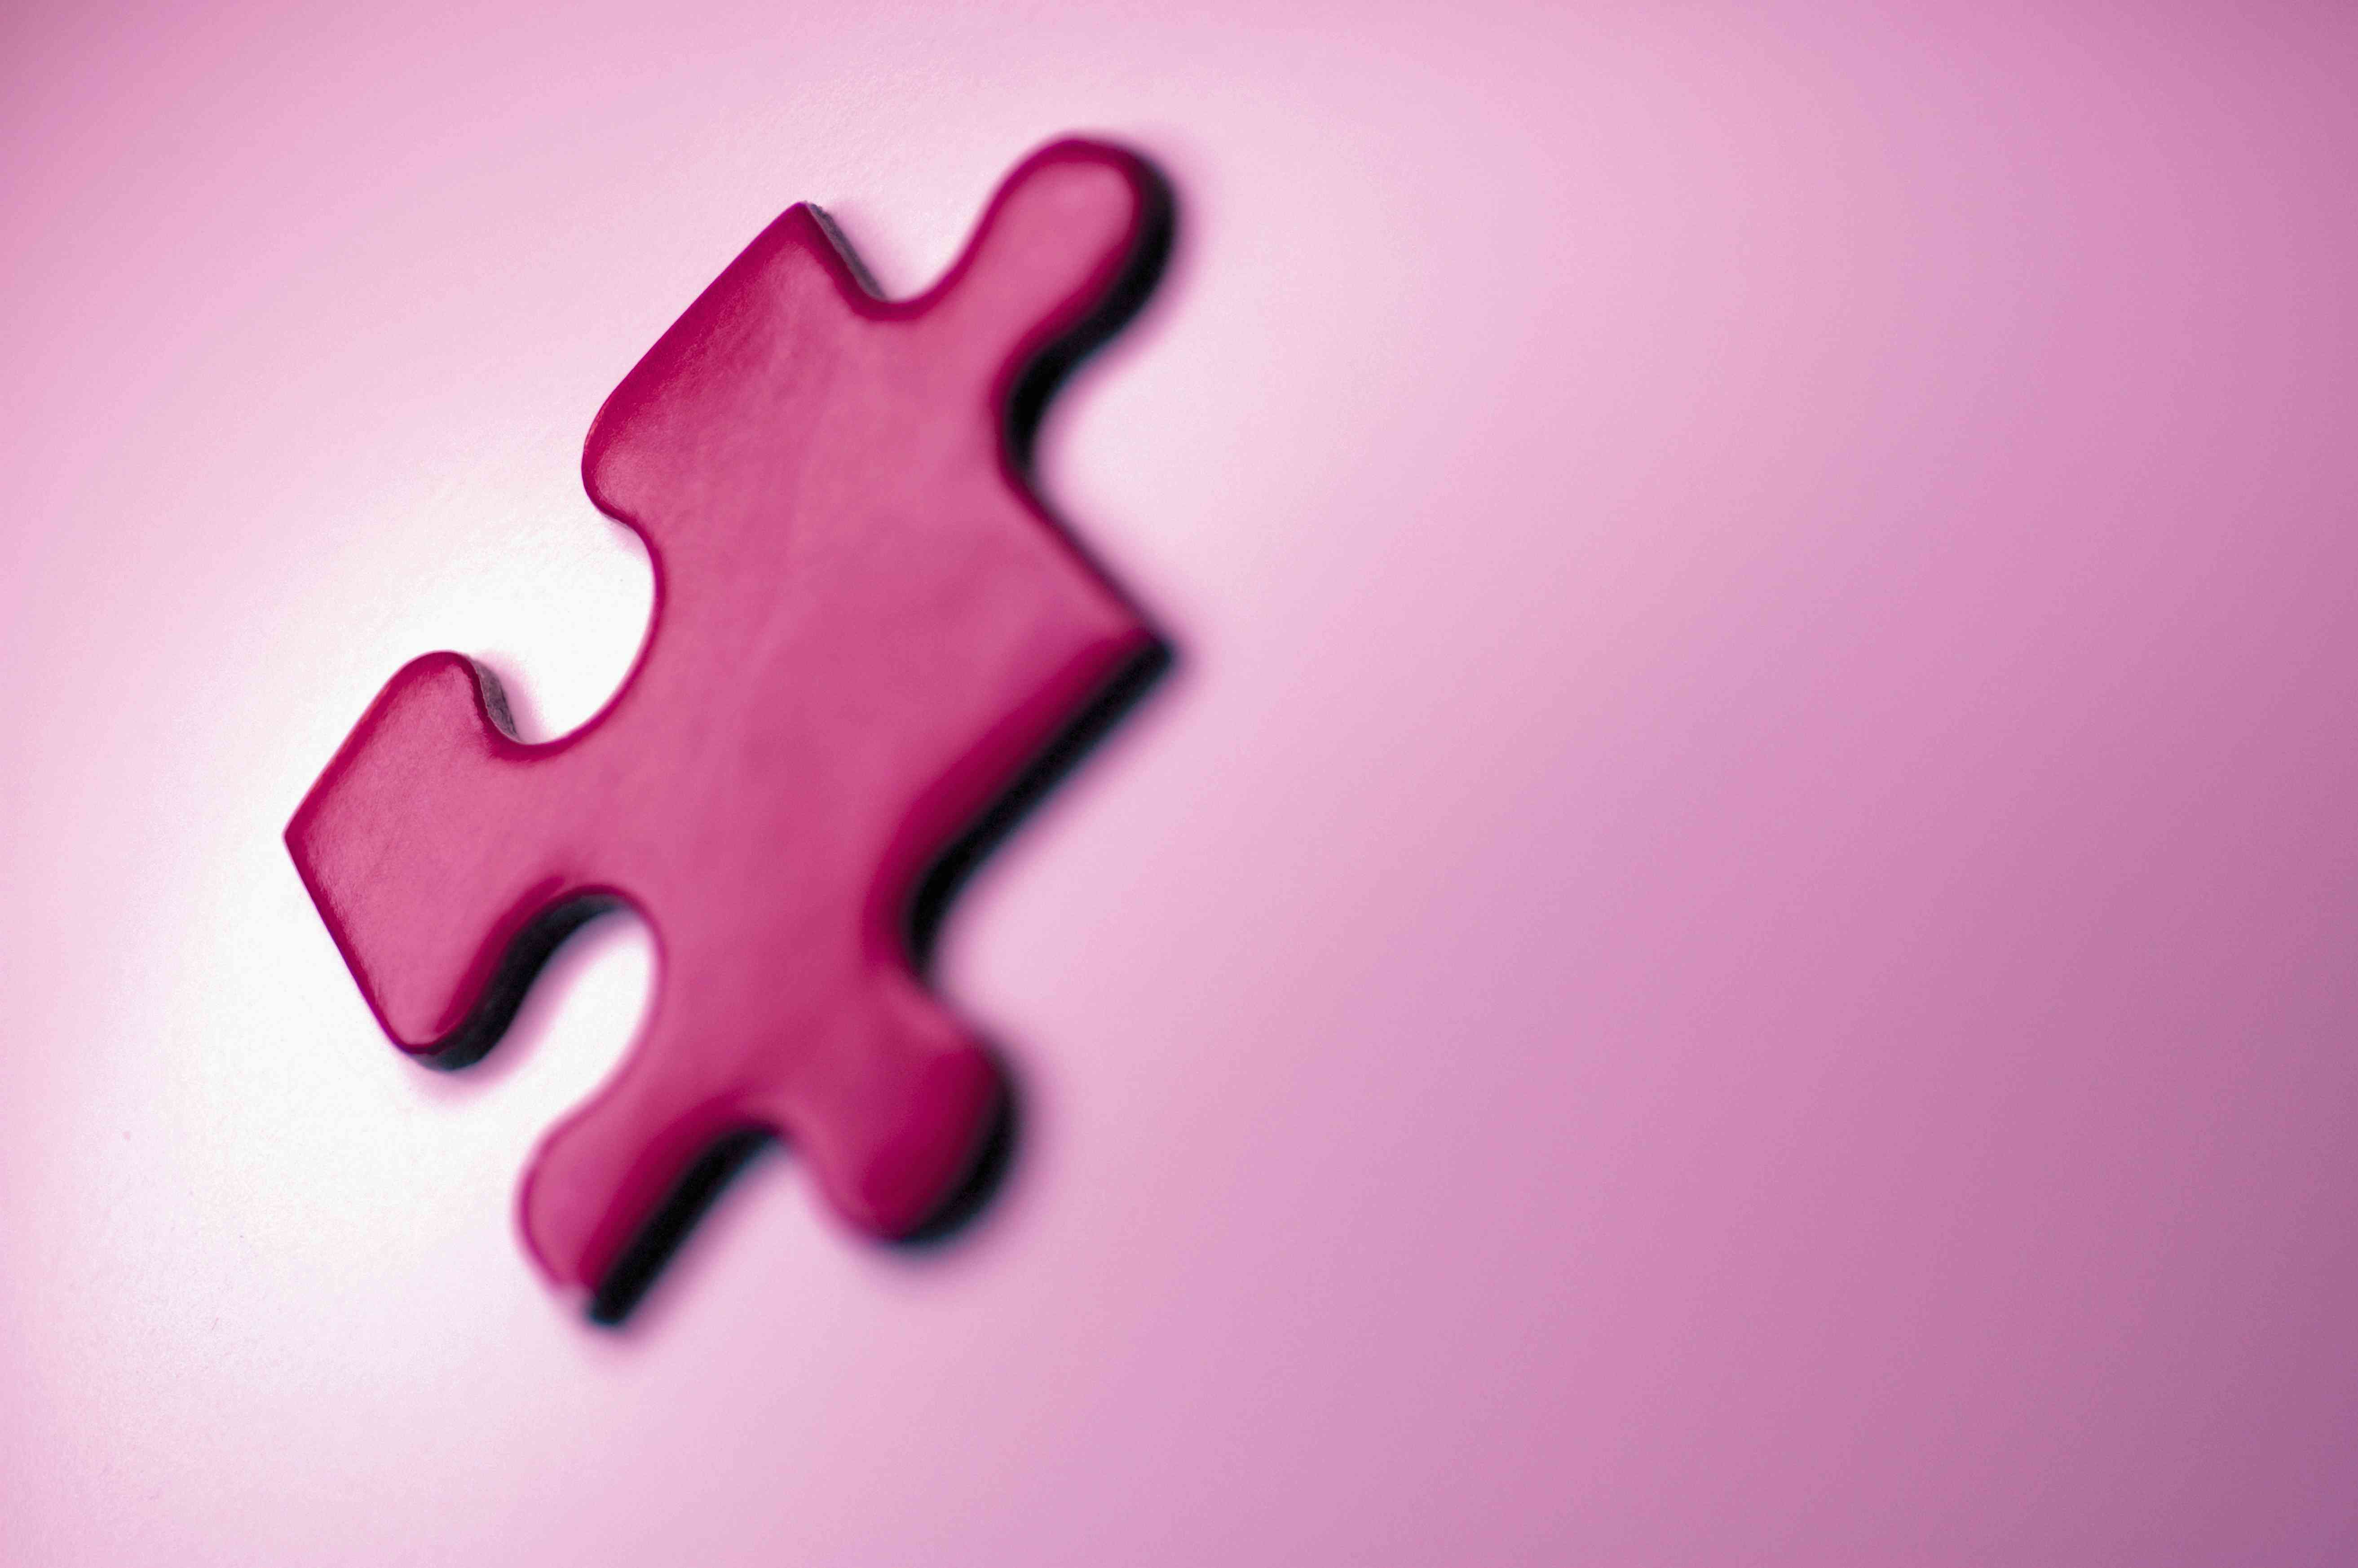 Puzzle piece on pink background